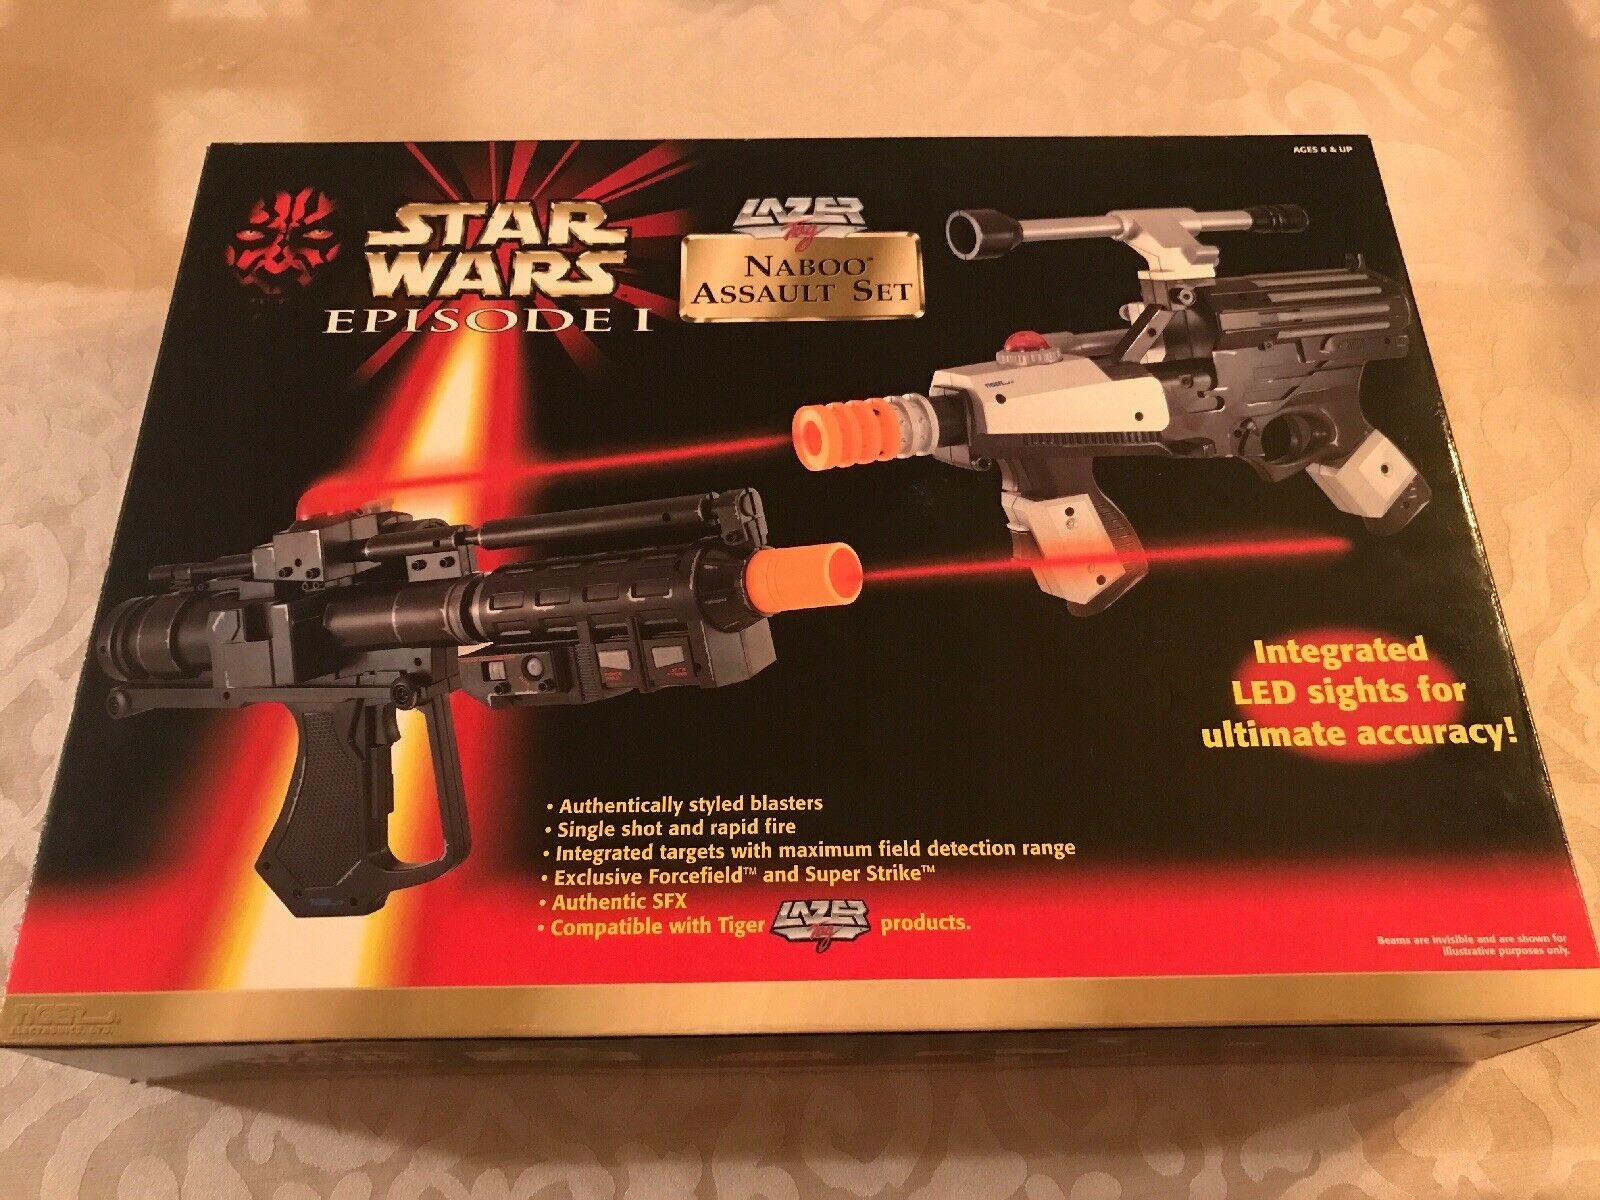 STAR WARS EPISODE I LAZER Tag Naboo  Assault Toy Gun Set Model 88-404 NIB